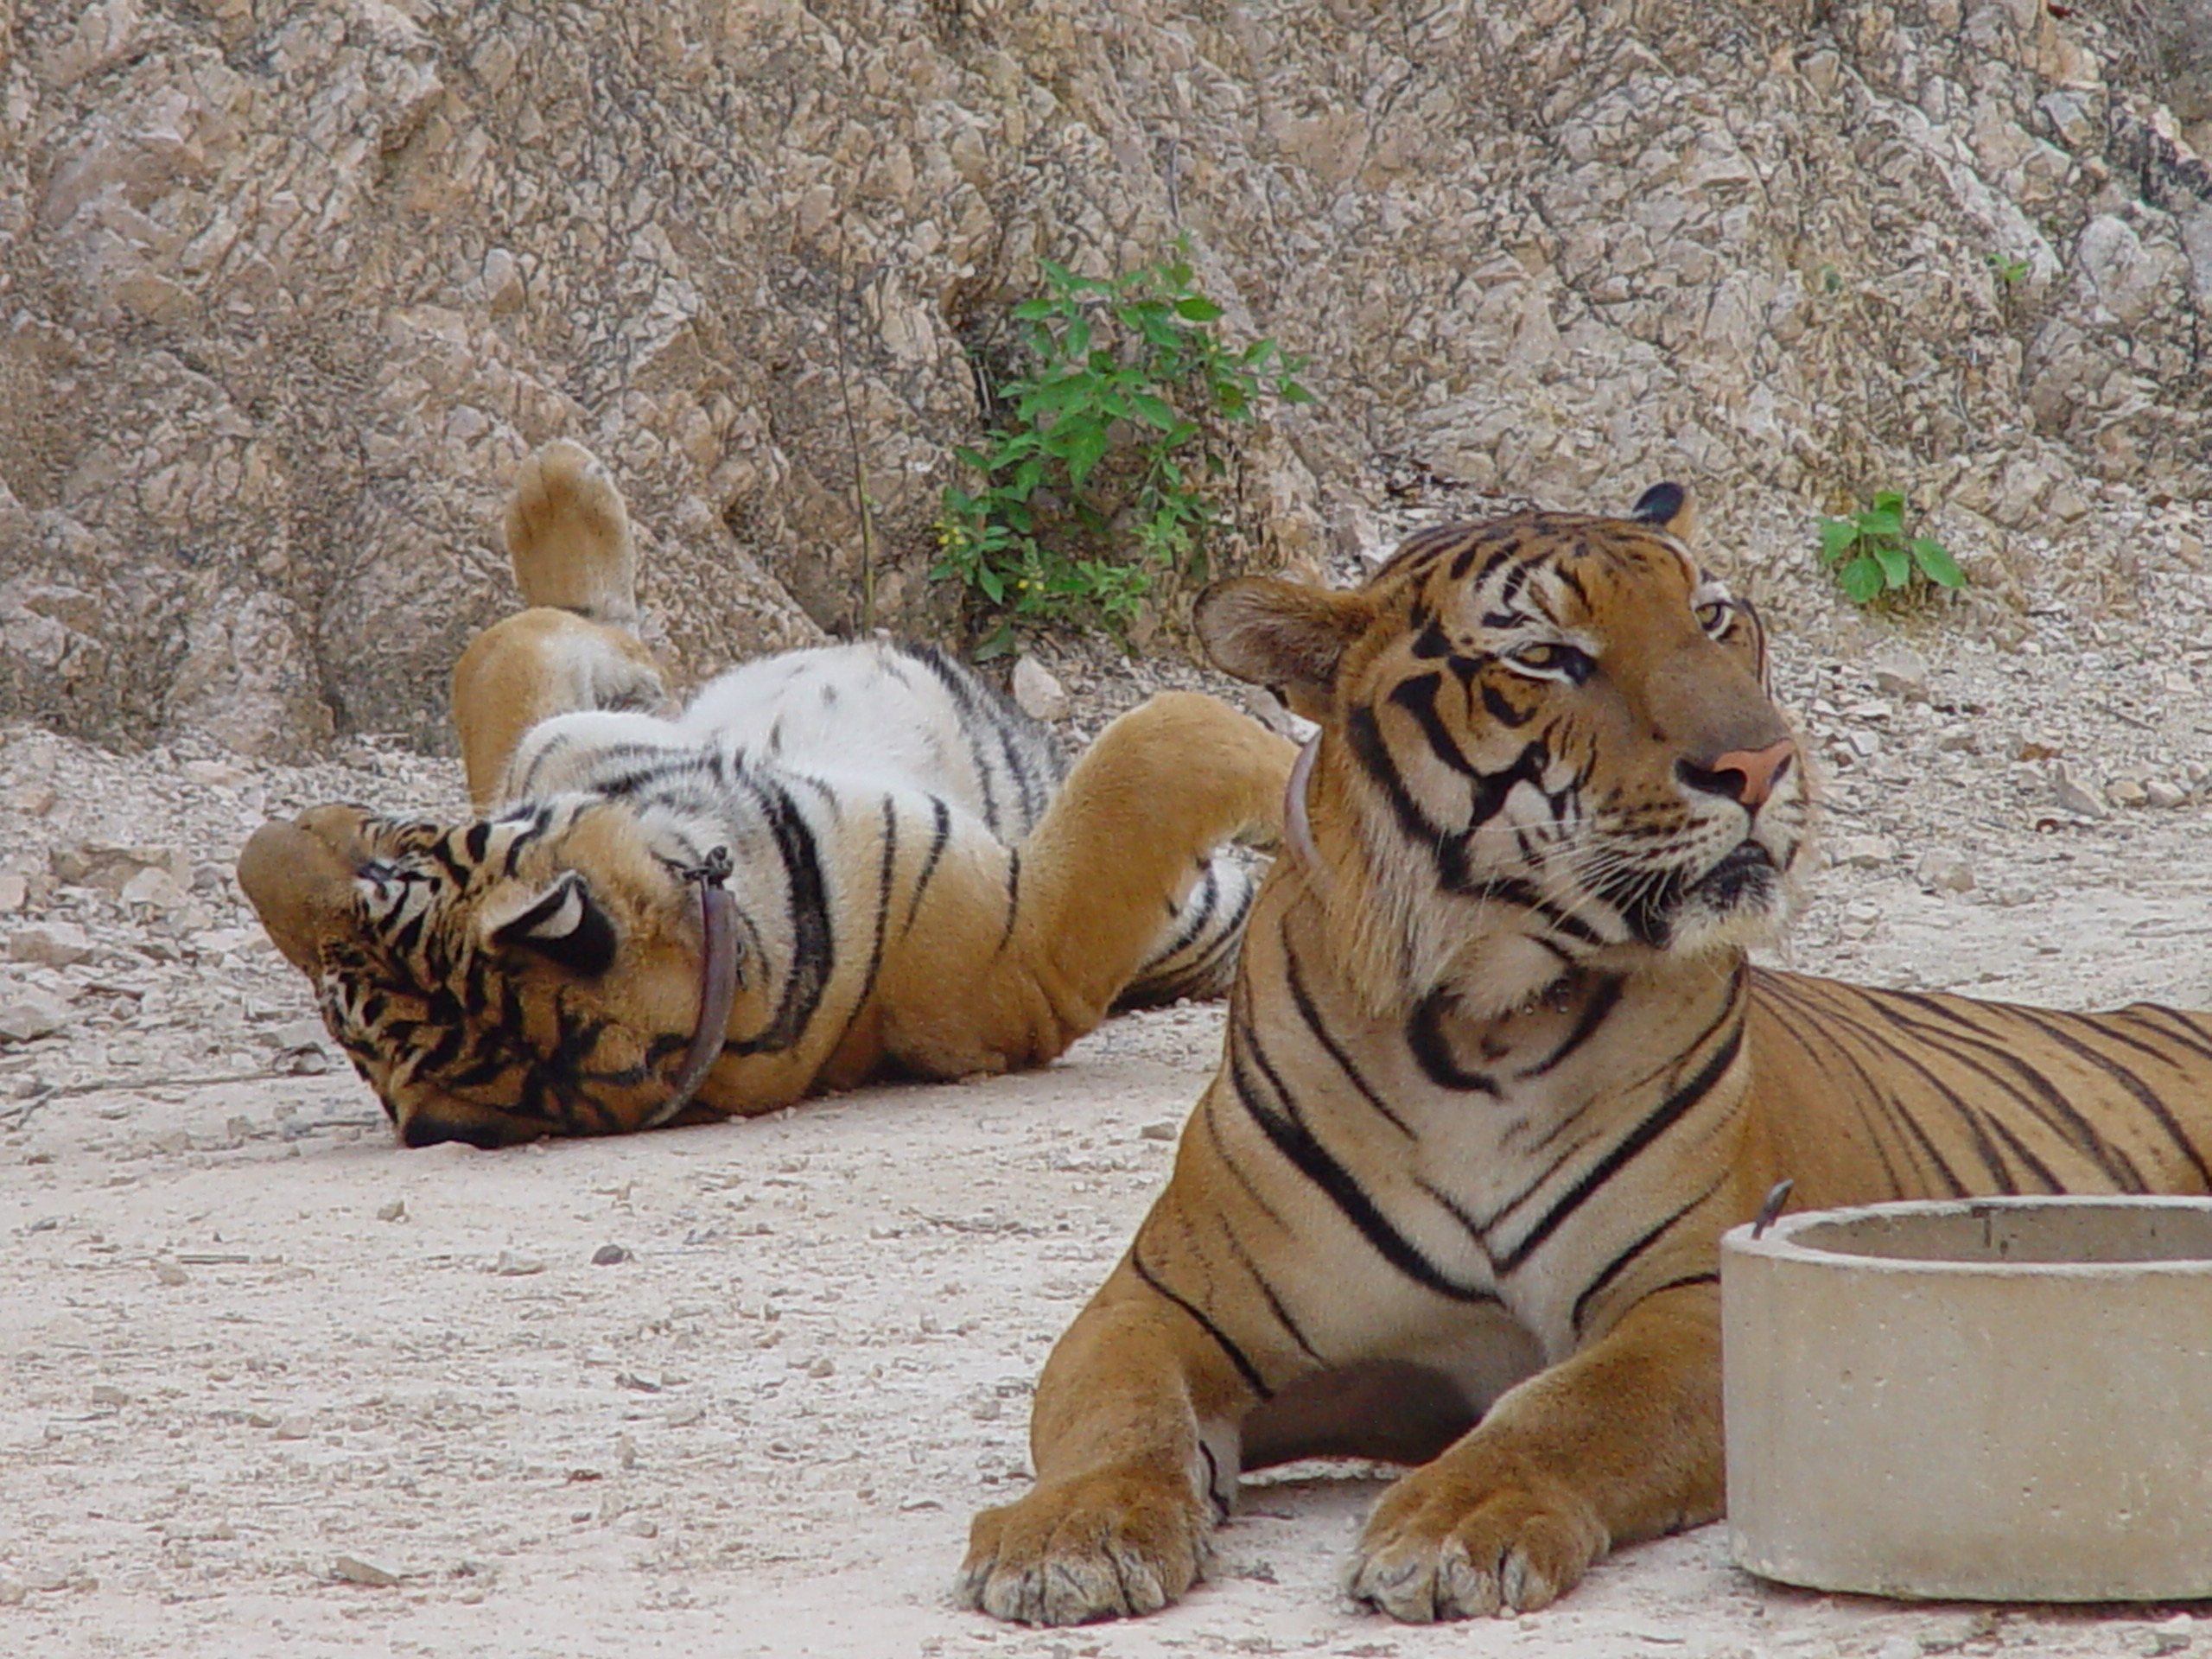 File:Tigers in the Tiger Temple, Thailand.jpg - Wikimedia ...